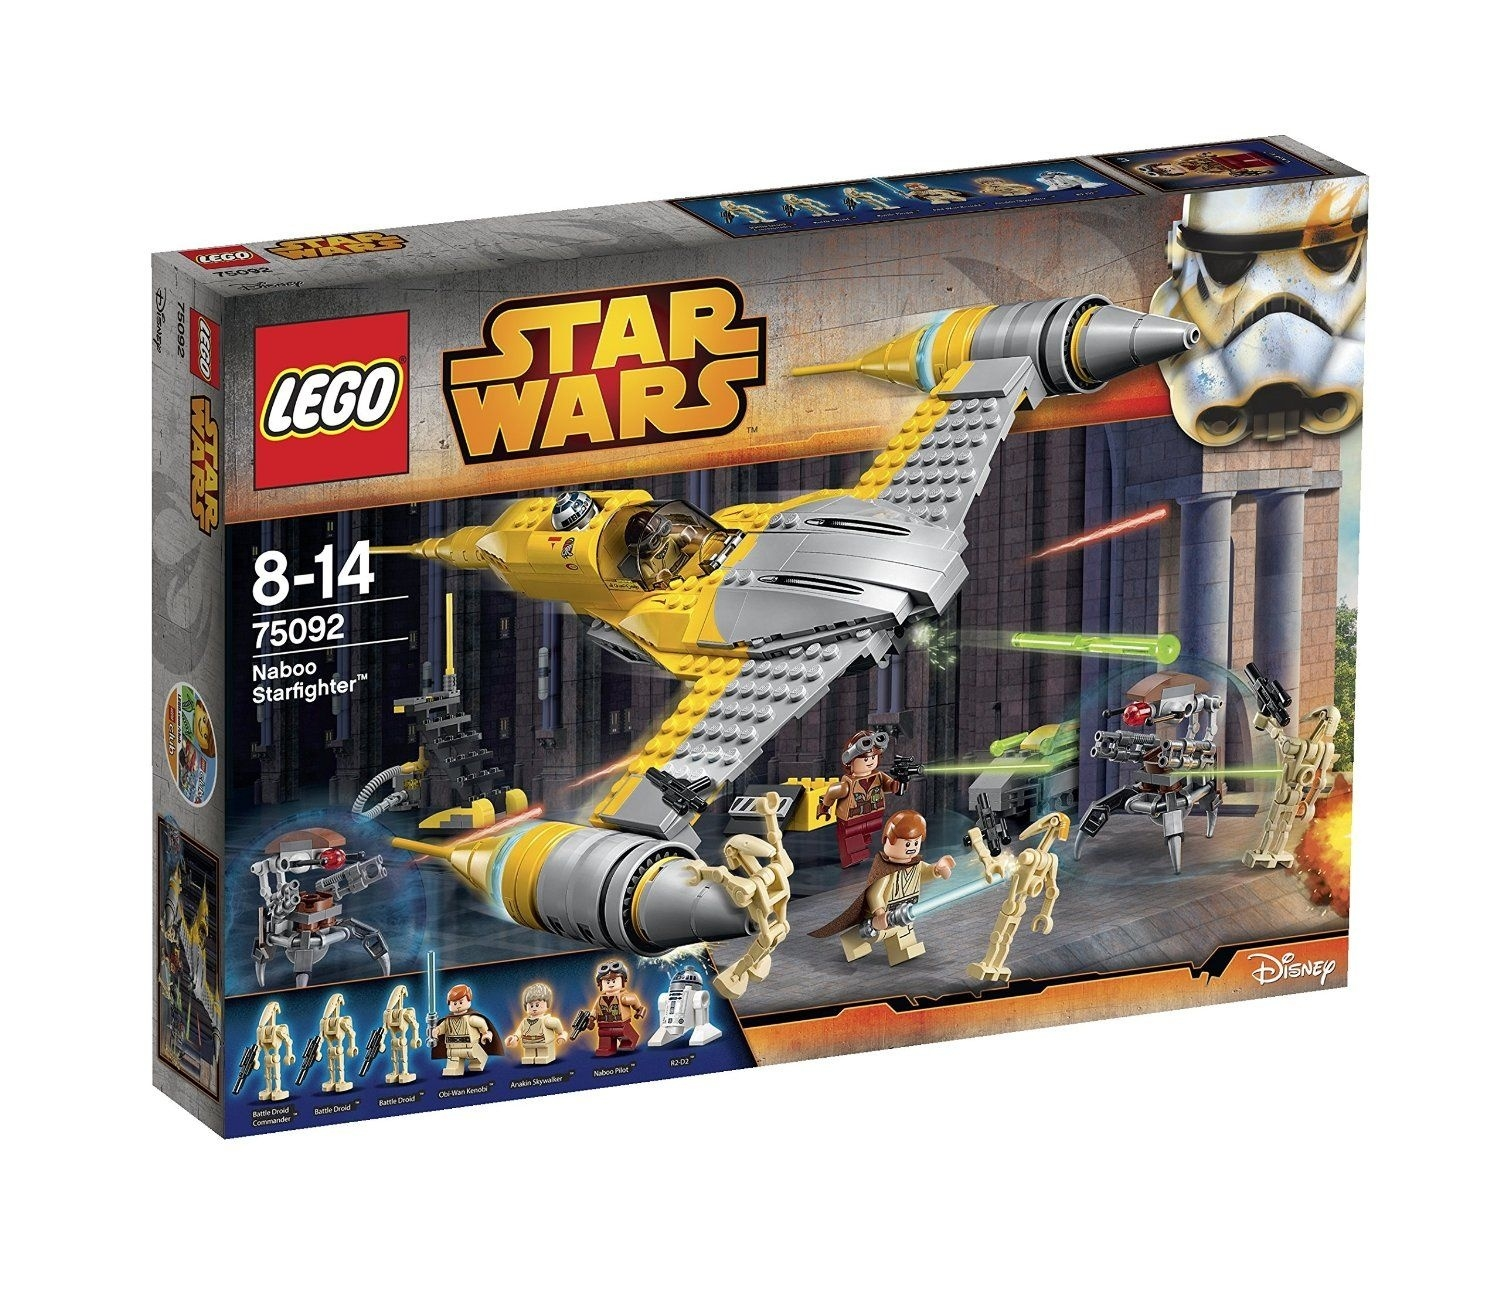 Lego Star Wars: Naboo Starfighter (75092) Manufacturer: Lego Enarxis  Star Wars Lego Sets Code